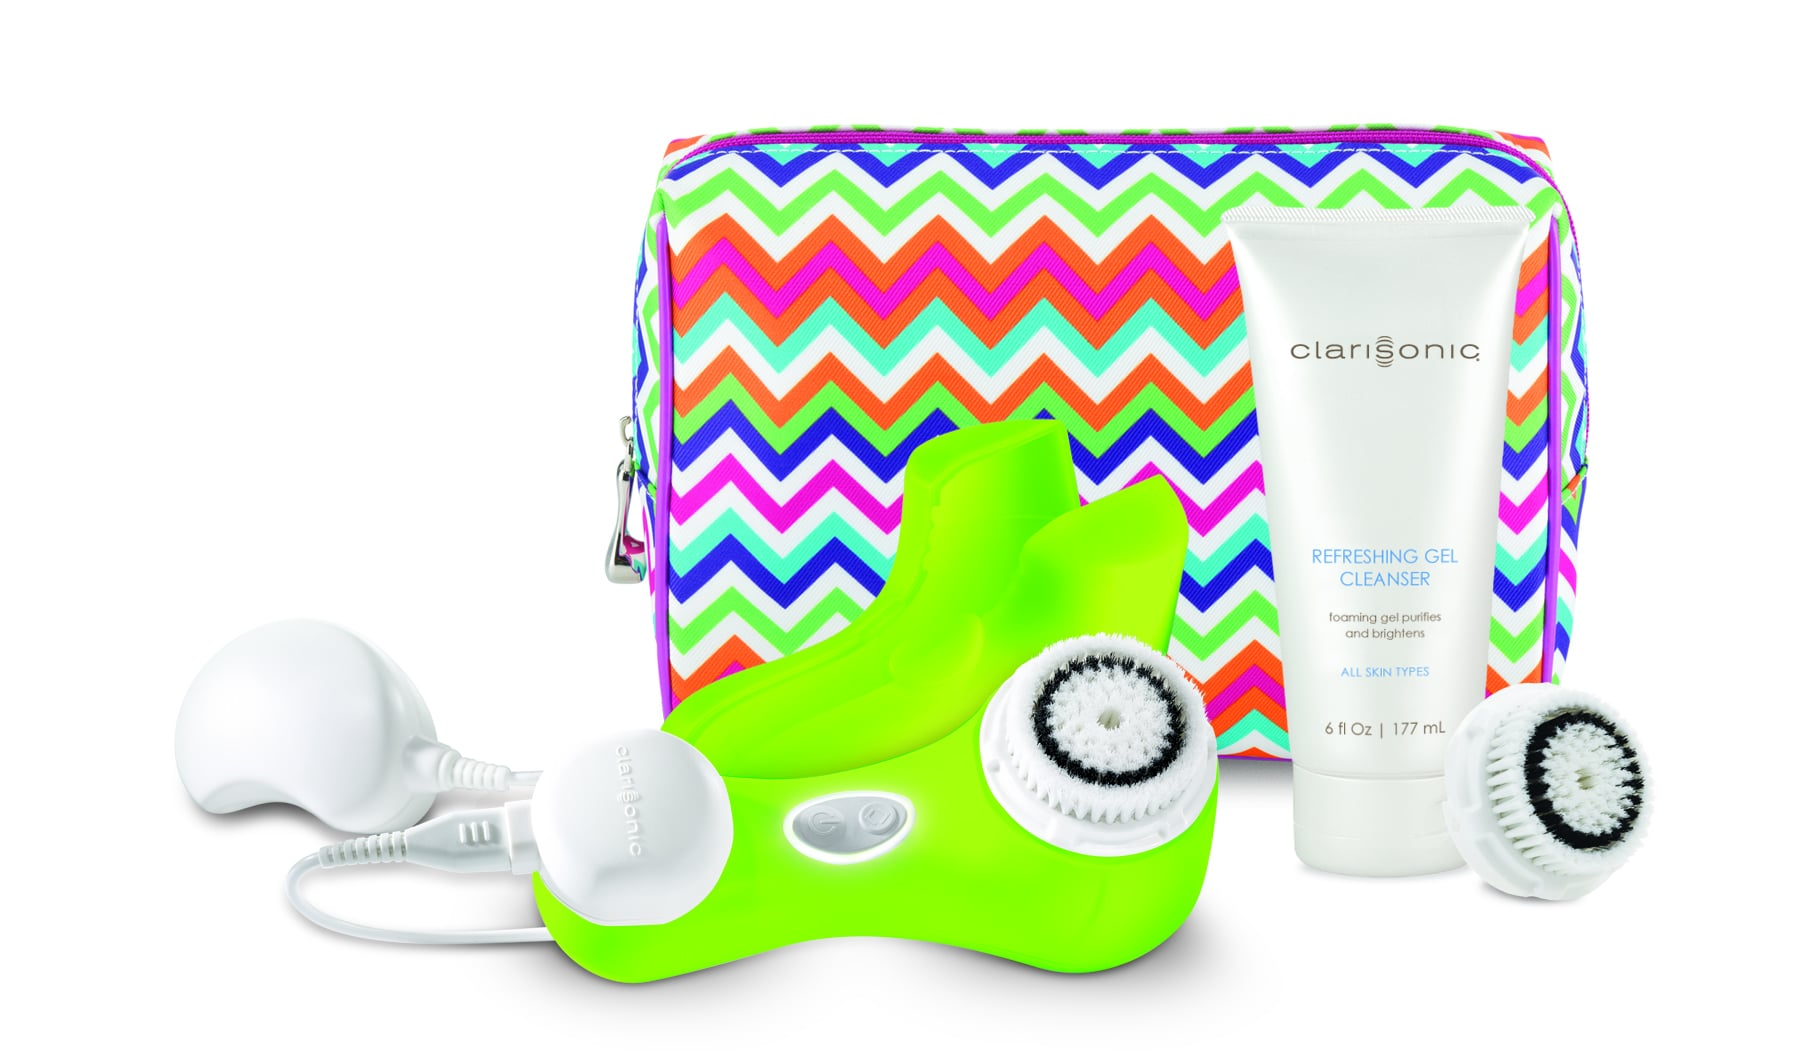 Clarisonic Mia 2 Fiji Green Set, $150 (222 Value)